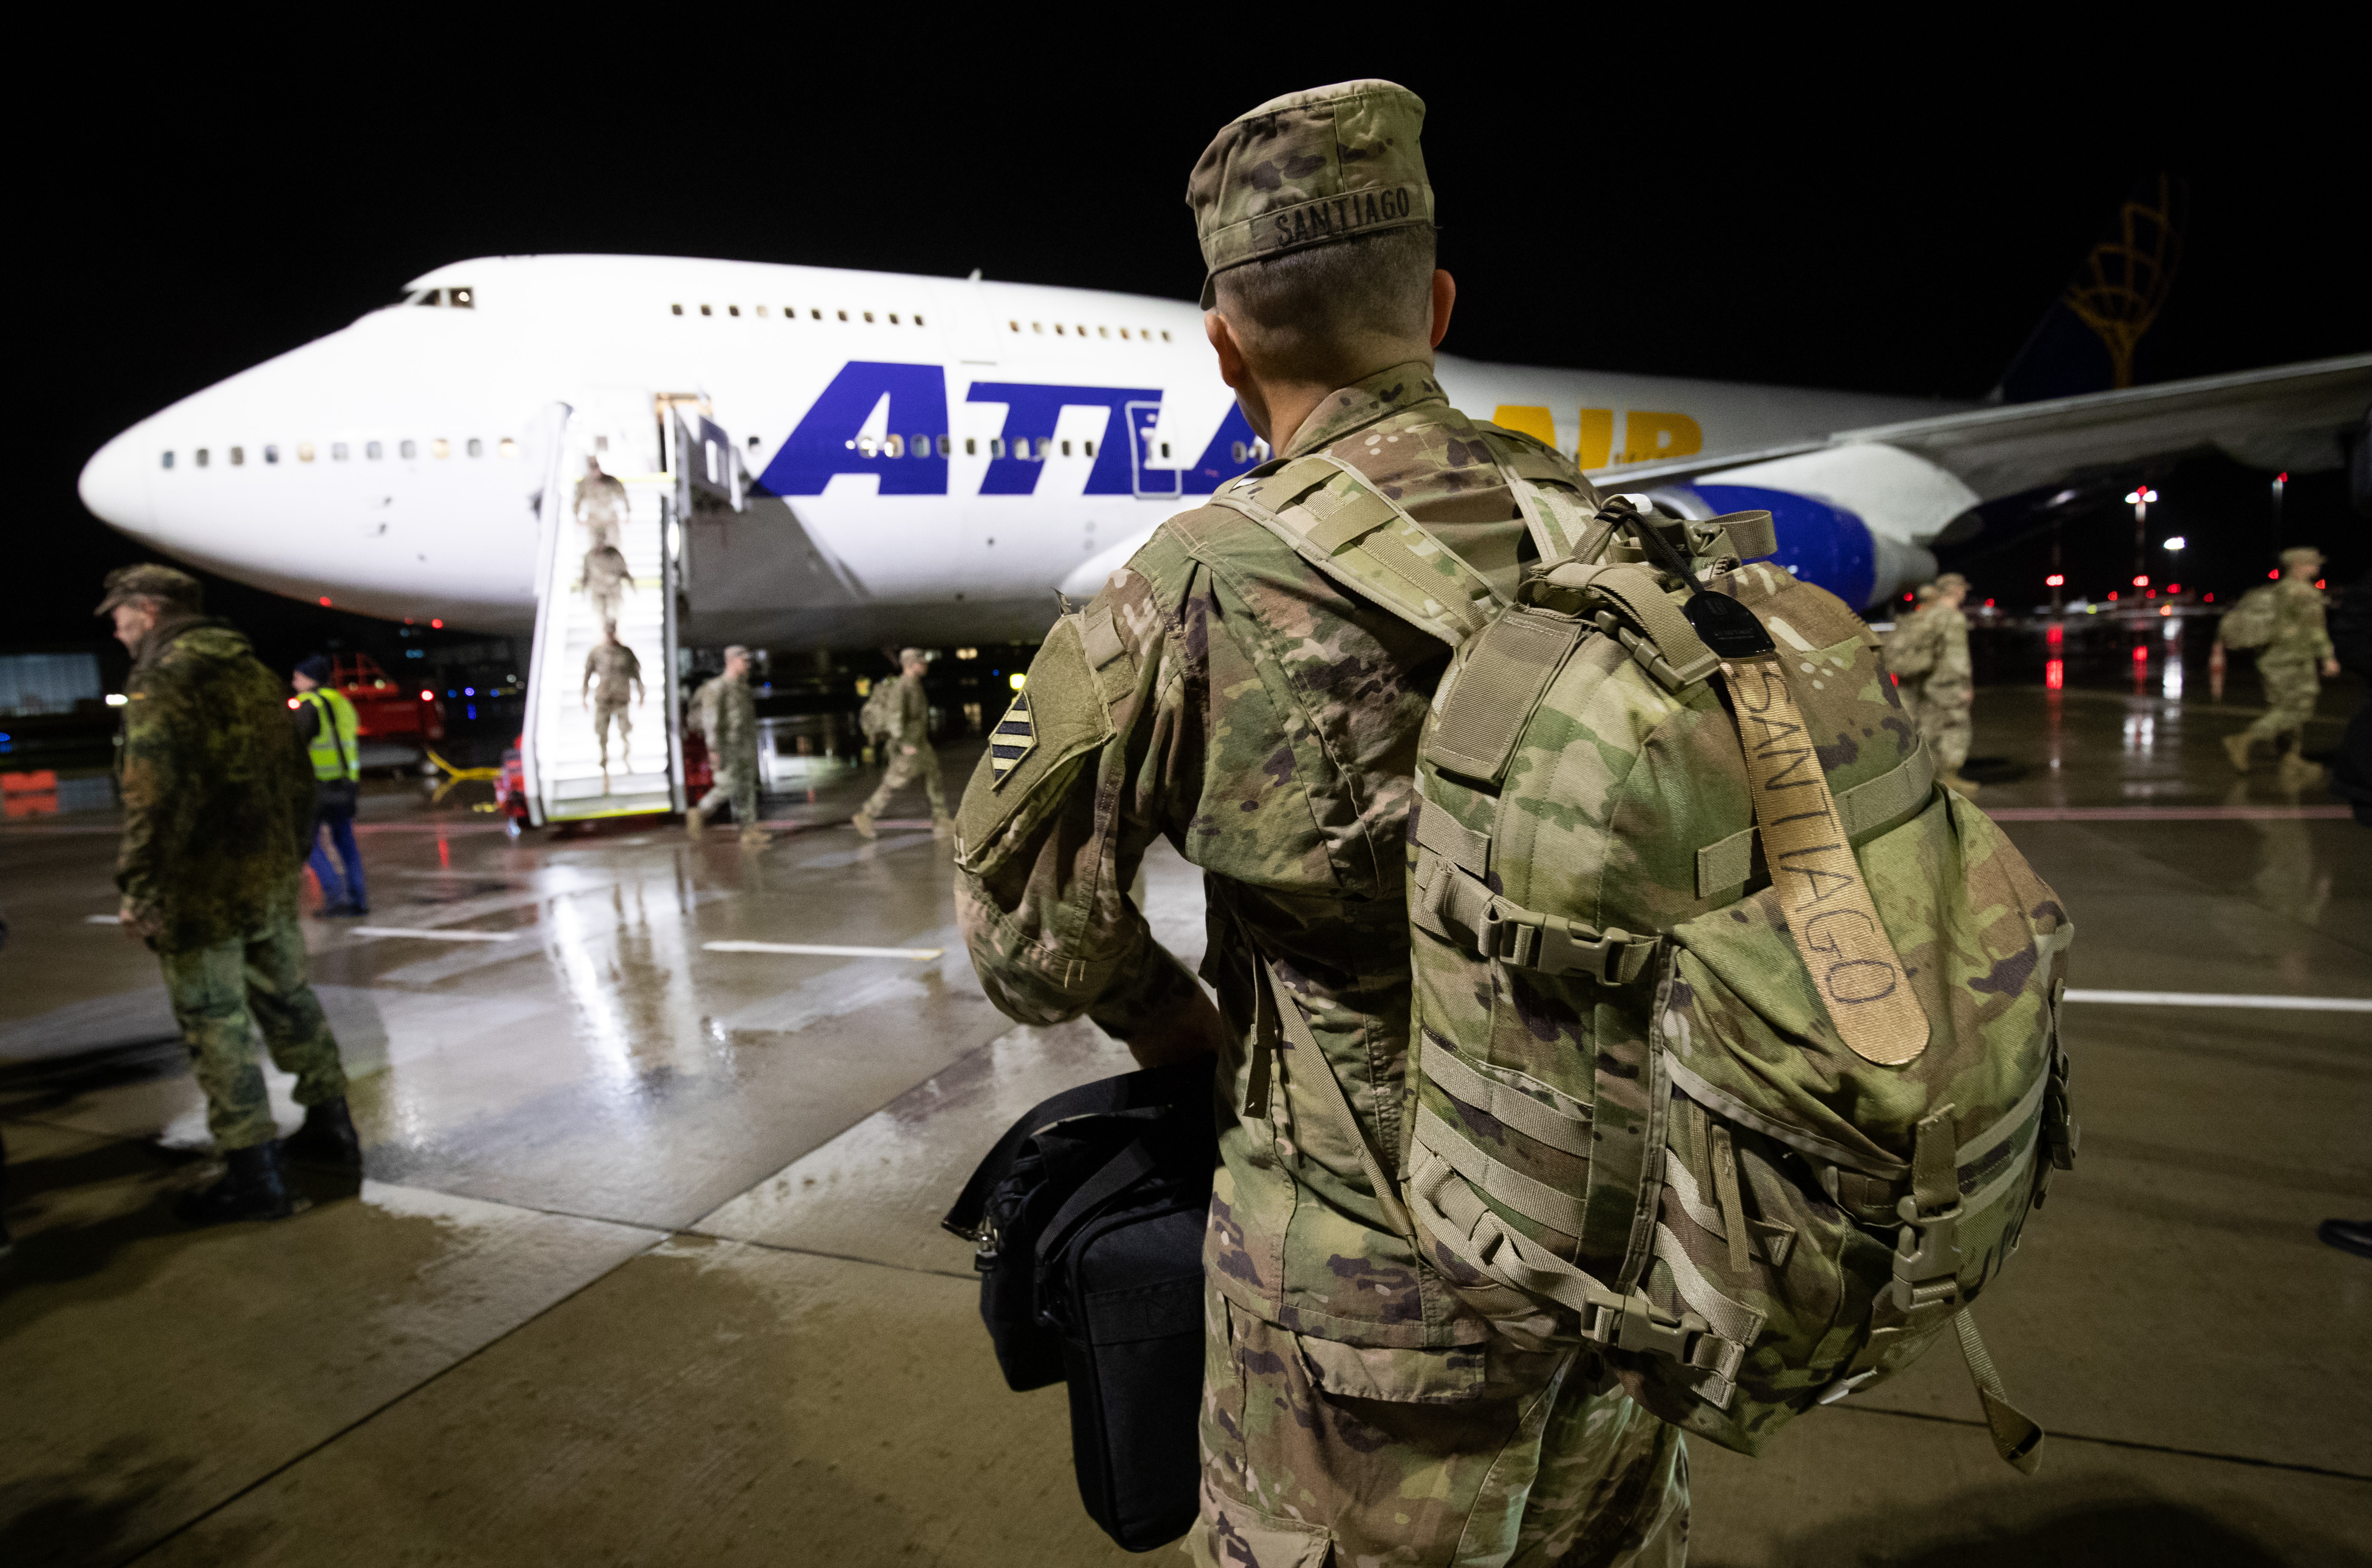 Soldiers of the 2nd Brigade of the 3rd Infantry Division from Fort Steward in the U.S. State of Georgia arrive at the airport as part of the ongoing major exercise  Defender Europe 20  and walk across the apron to the waiting buses in Hamburg on Feb. 21, 2020.